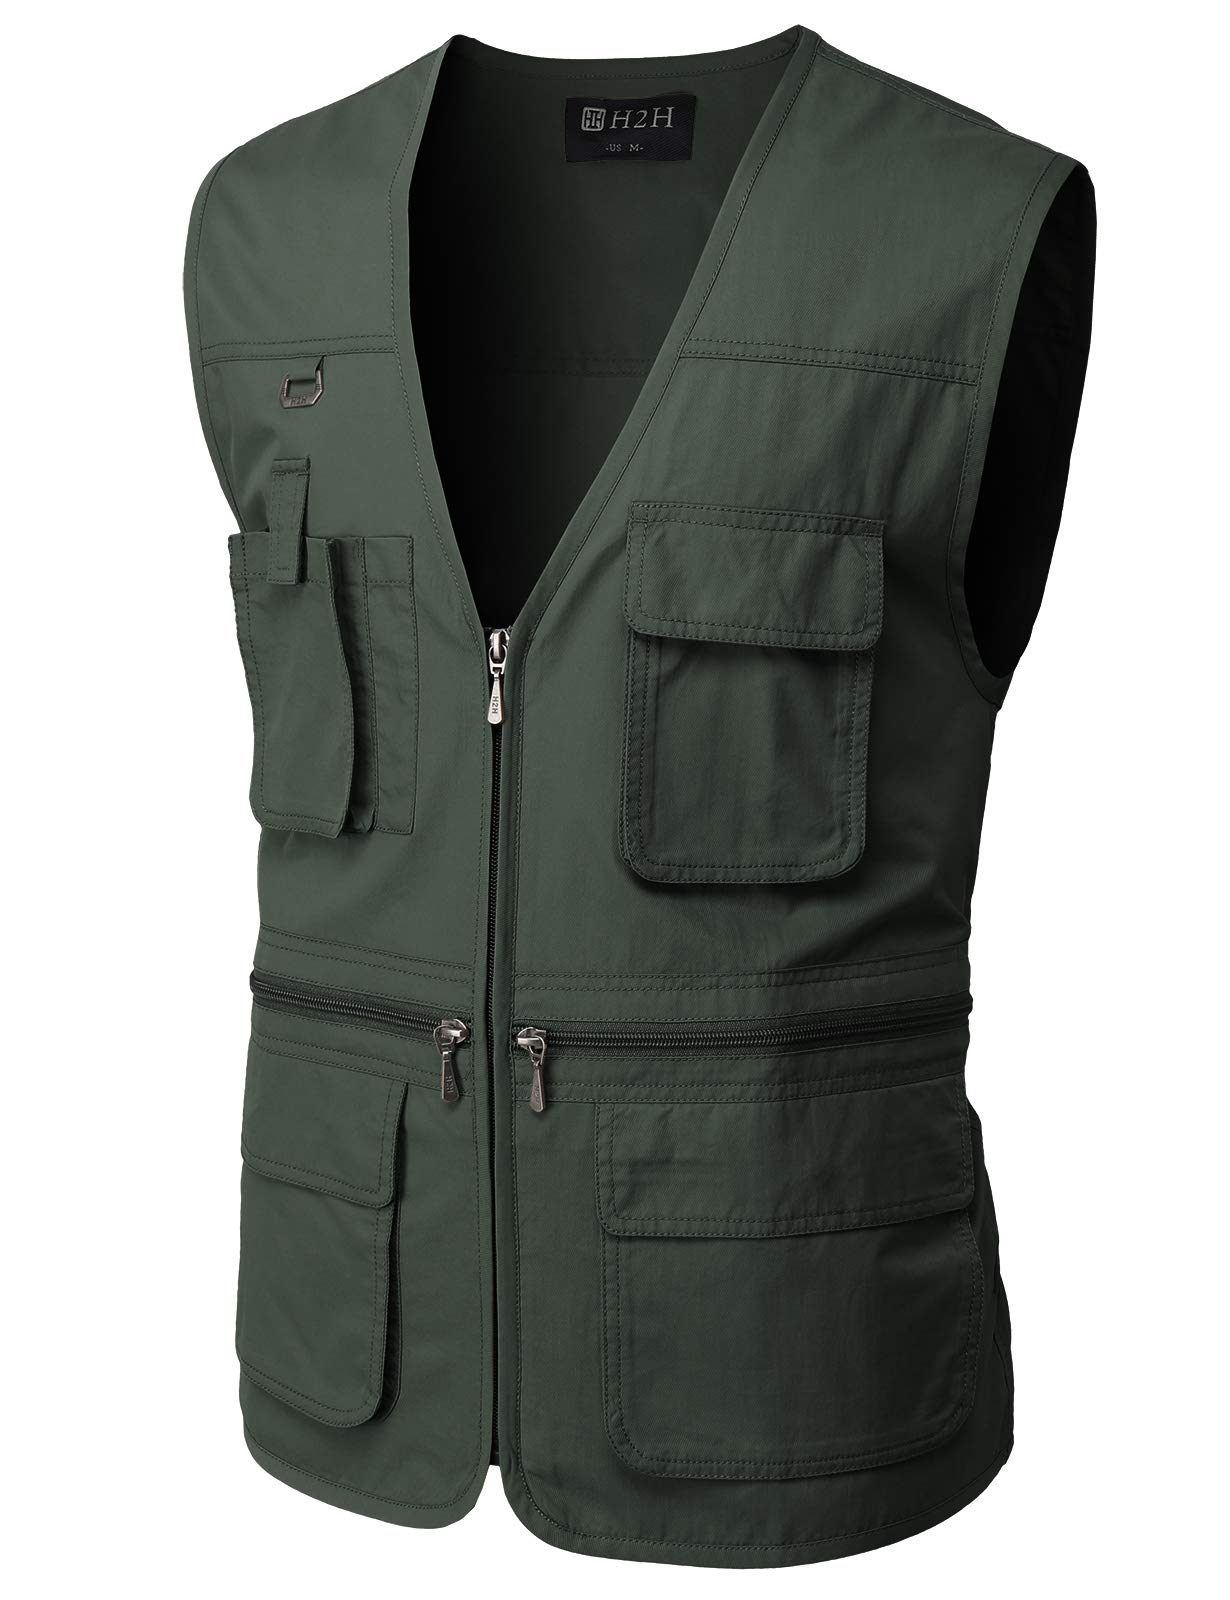 H2H Men's Fishing Vest Multi Pockets Plus Size Outdoor Climbing Causual Tactical Multi Use Vest Charcoal US XL/Asia 2XL (CMOV050) by H2H